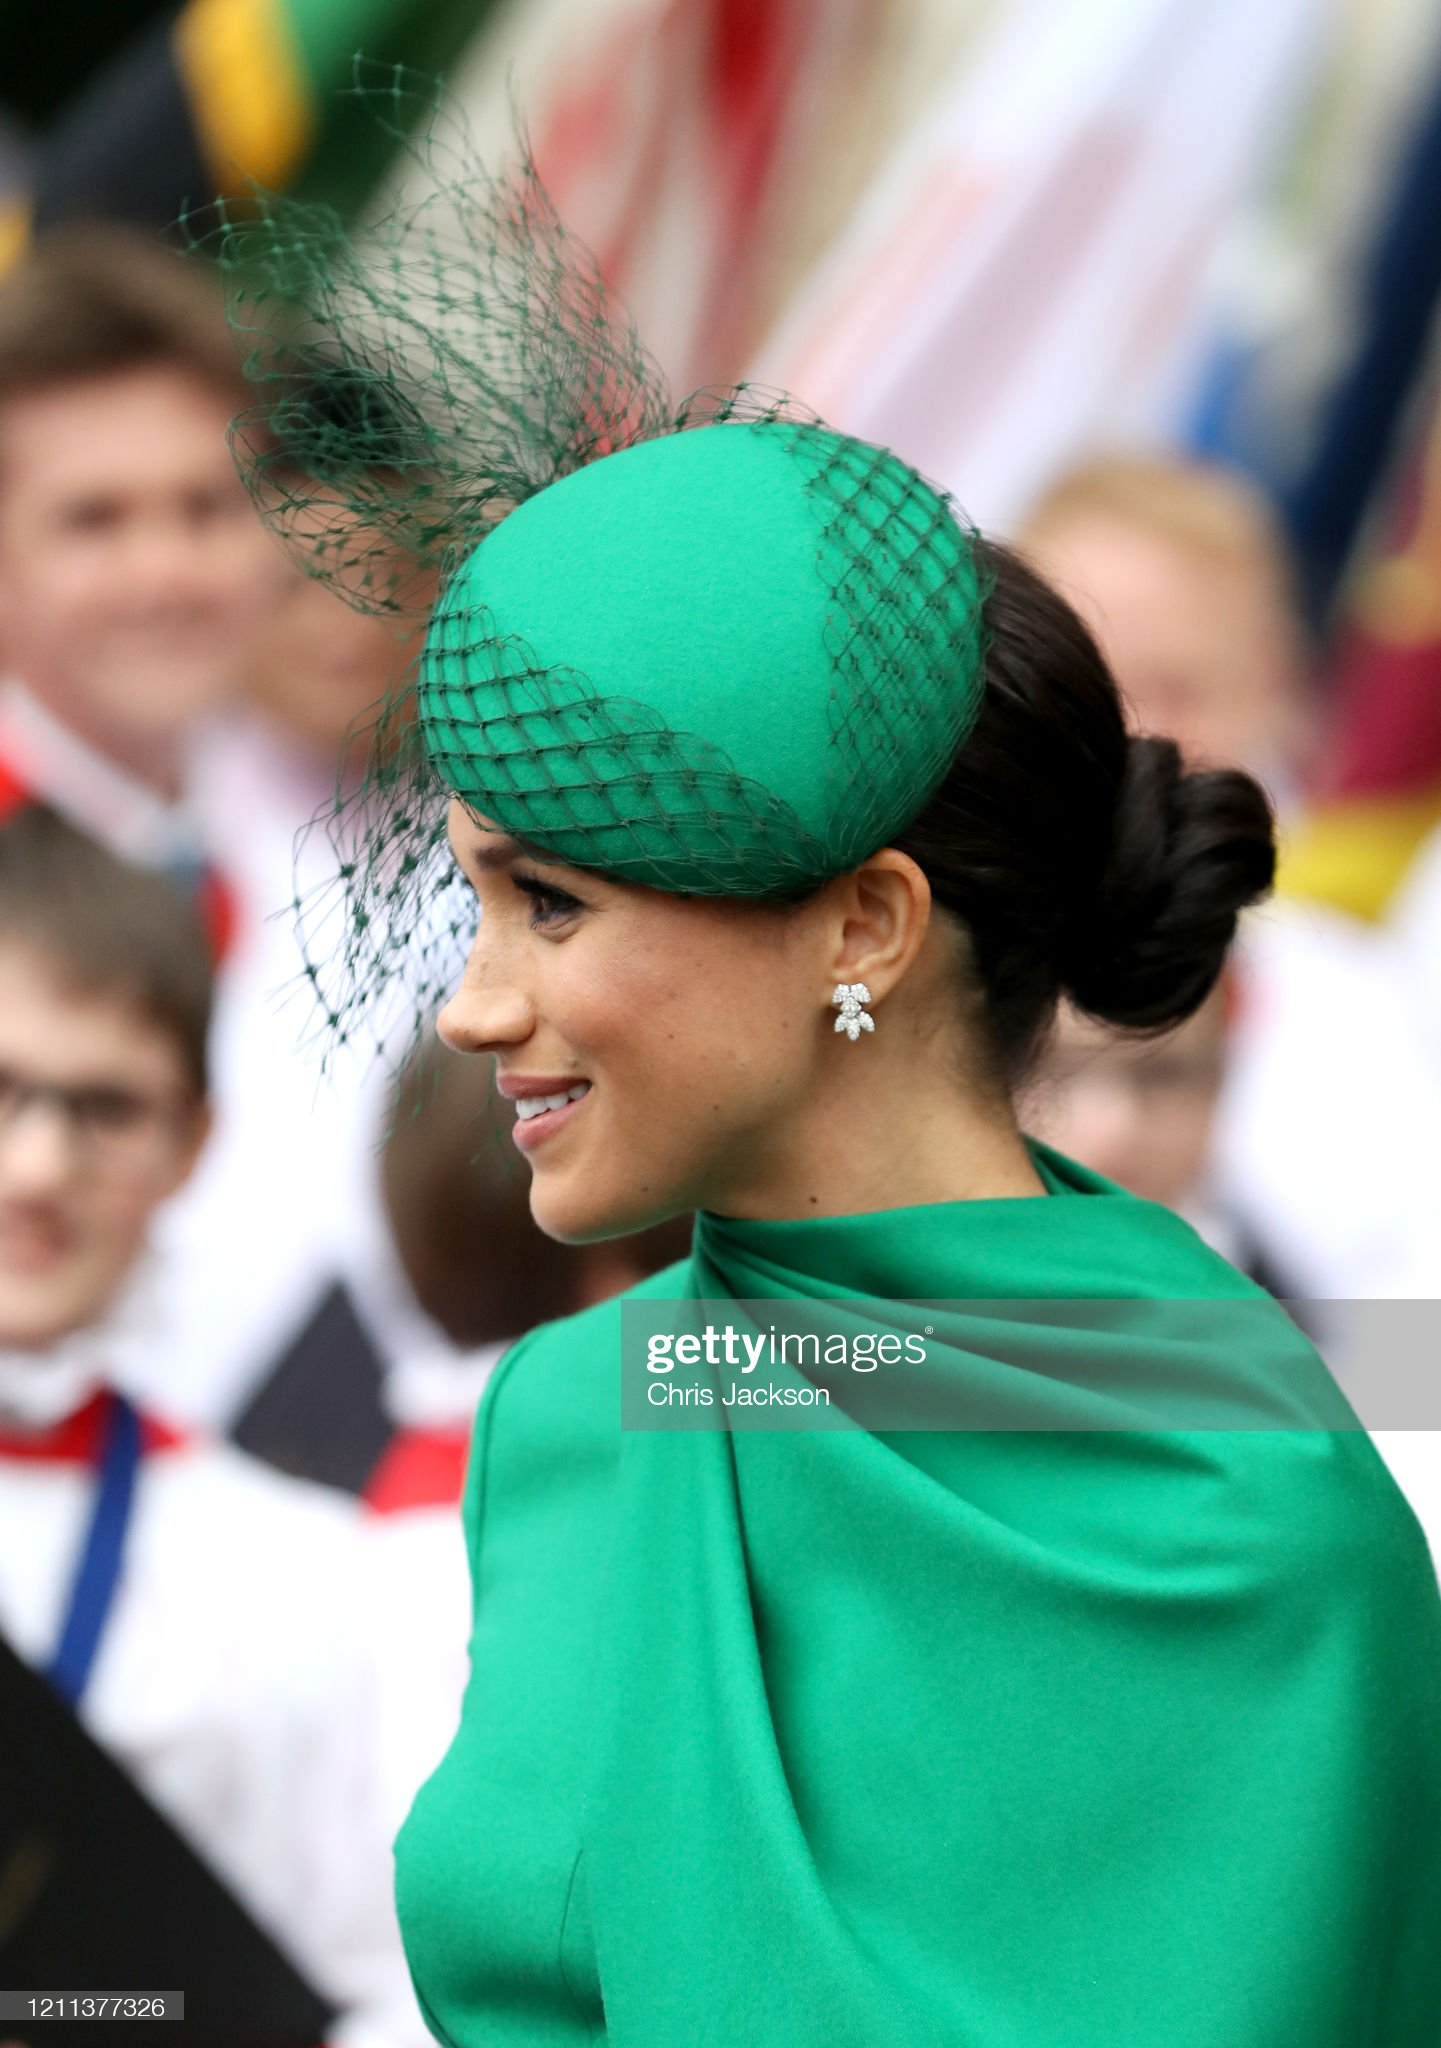 https://media.gettyimages.com/photos/meghan-duchess-of-sussex-departs-the-commonwealth-day-service-2020-at-picture-id1211377326?s=2048x2048